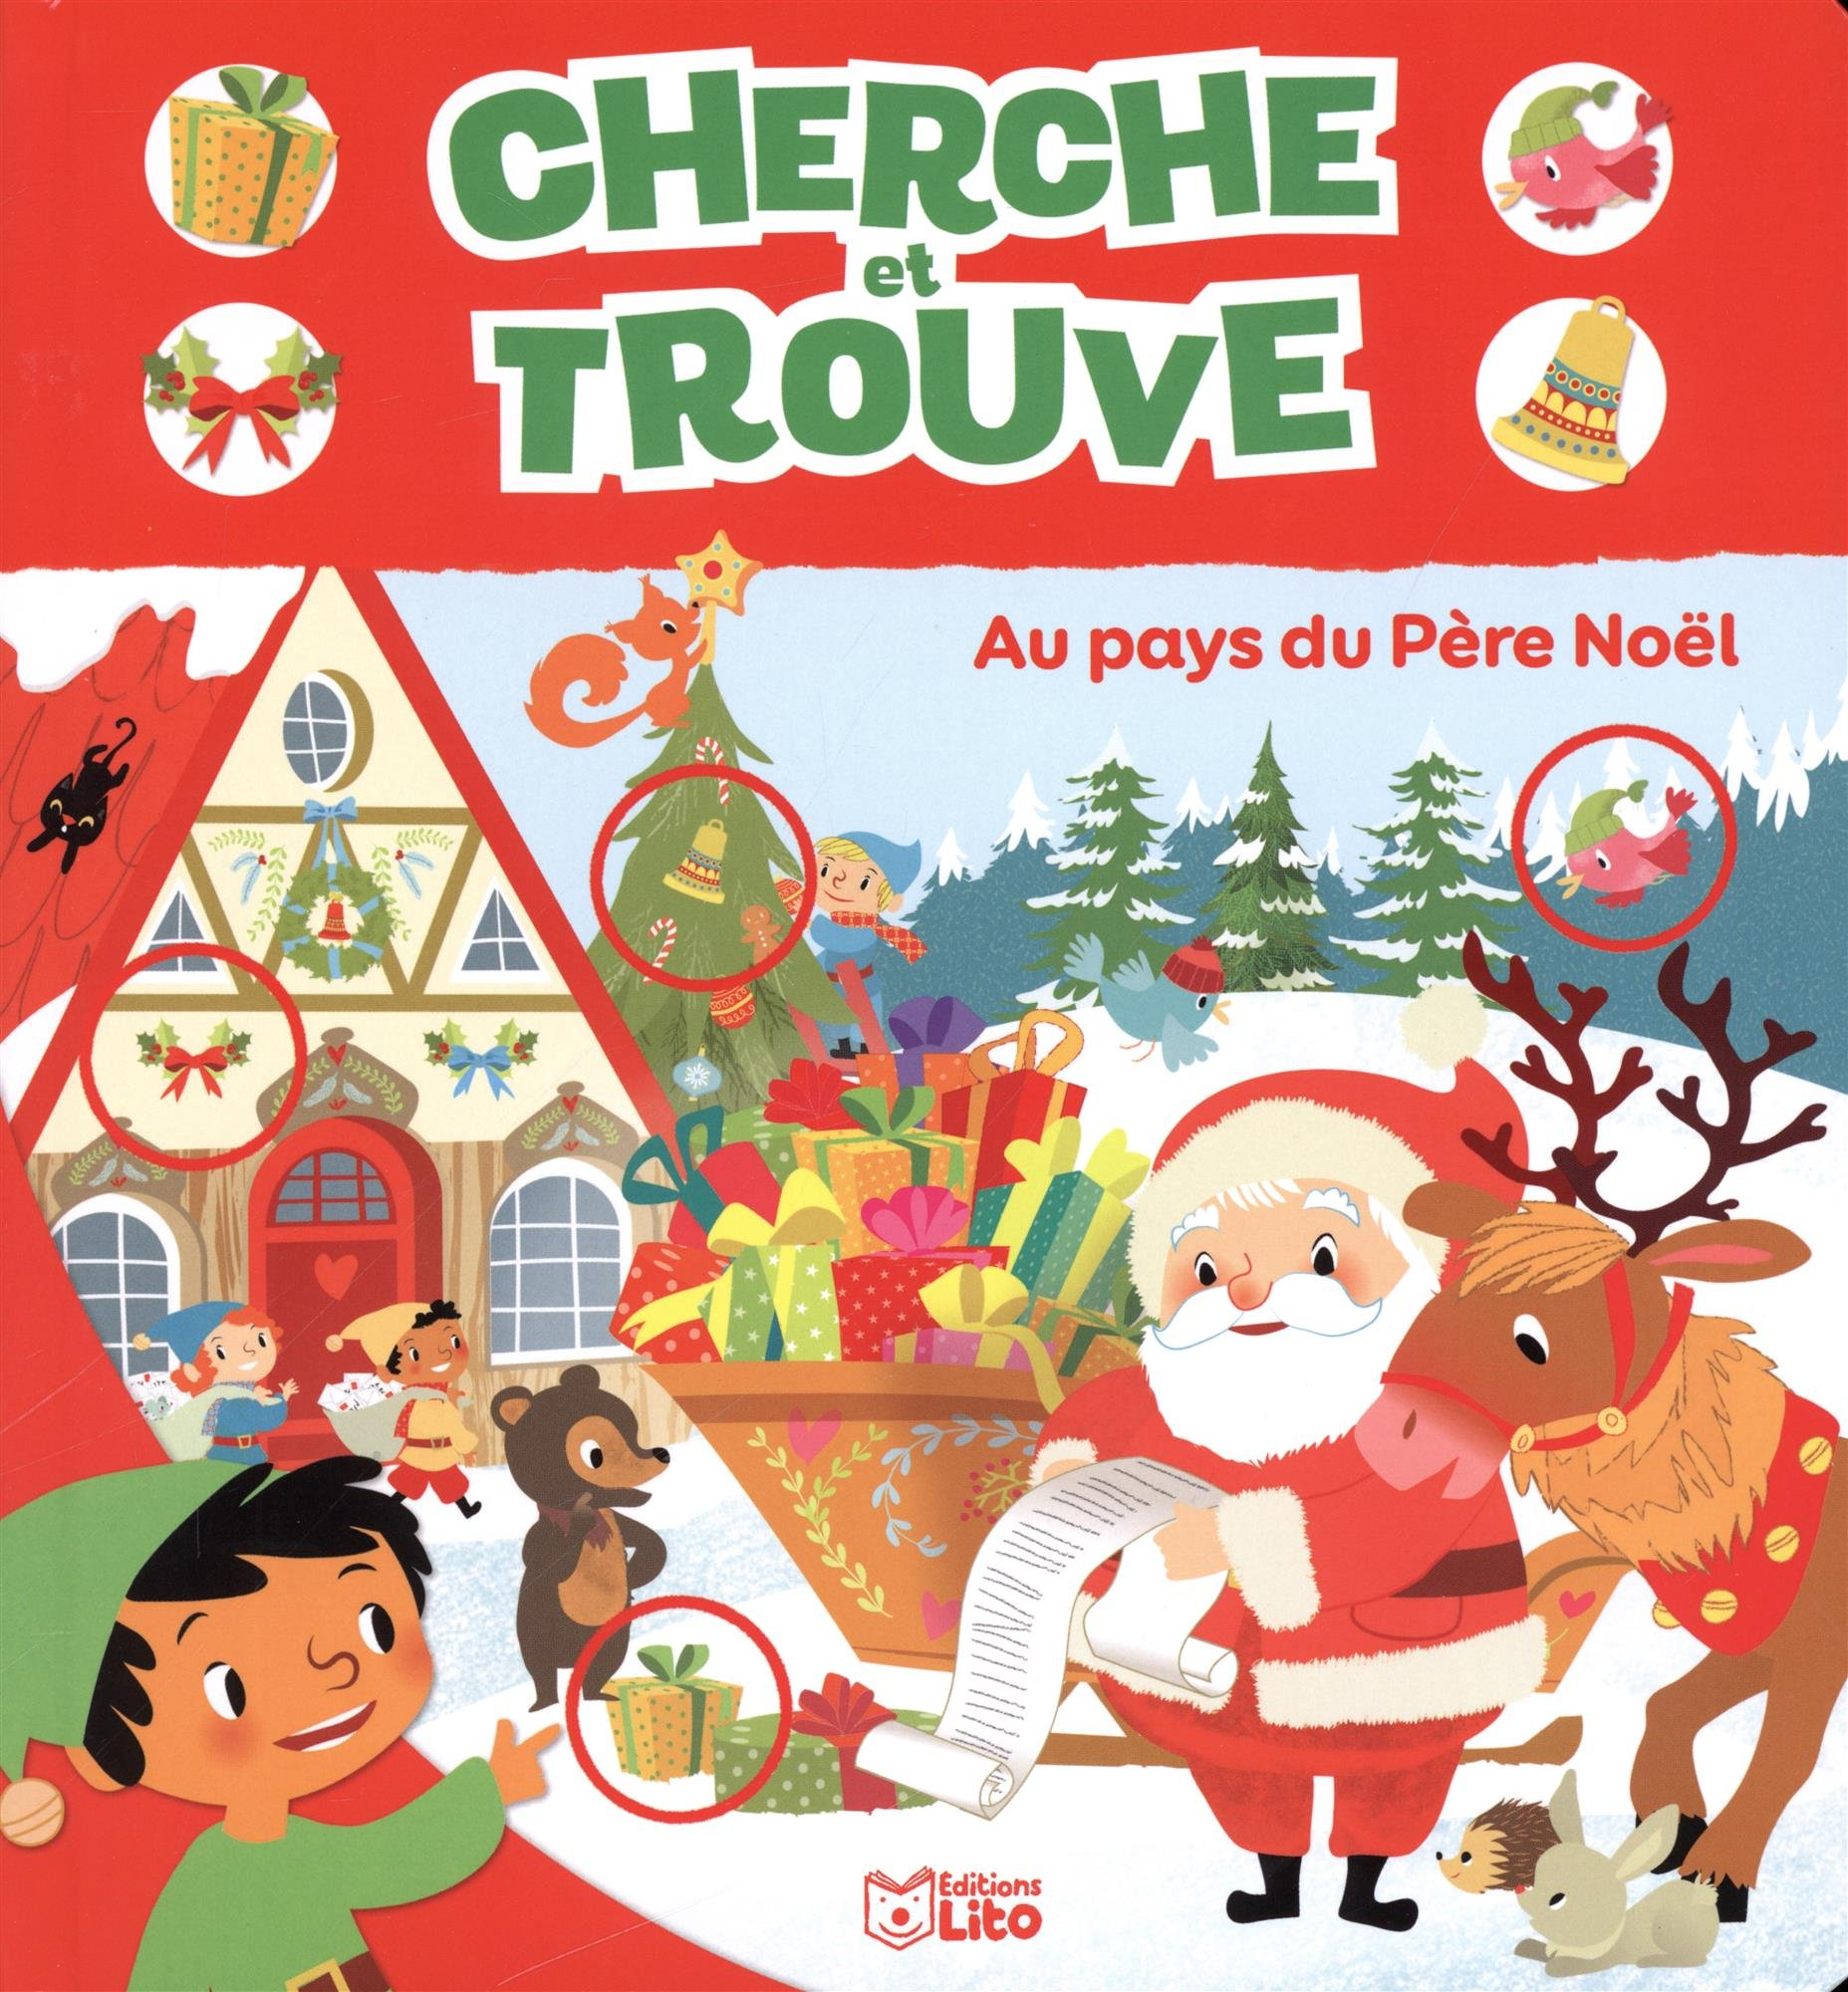 Le Pays Du Pere Noel Au pays du Père Noël: Amazon.co.uk: Pop, Charlie: 9782244302164: Books